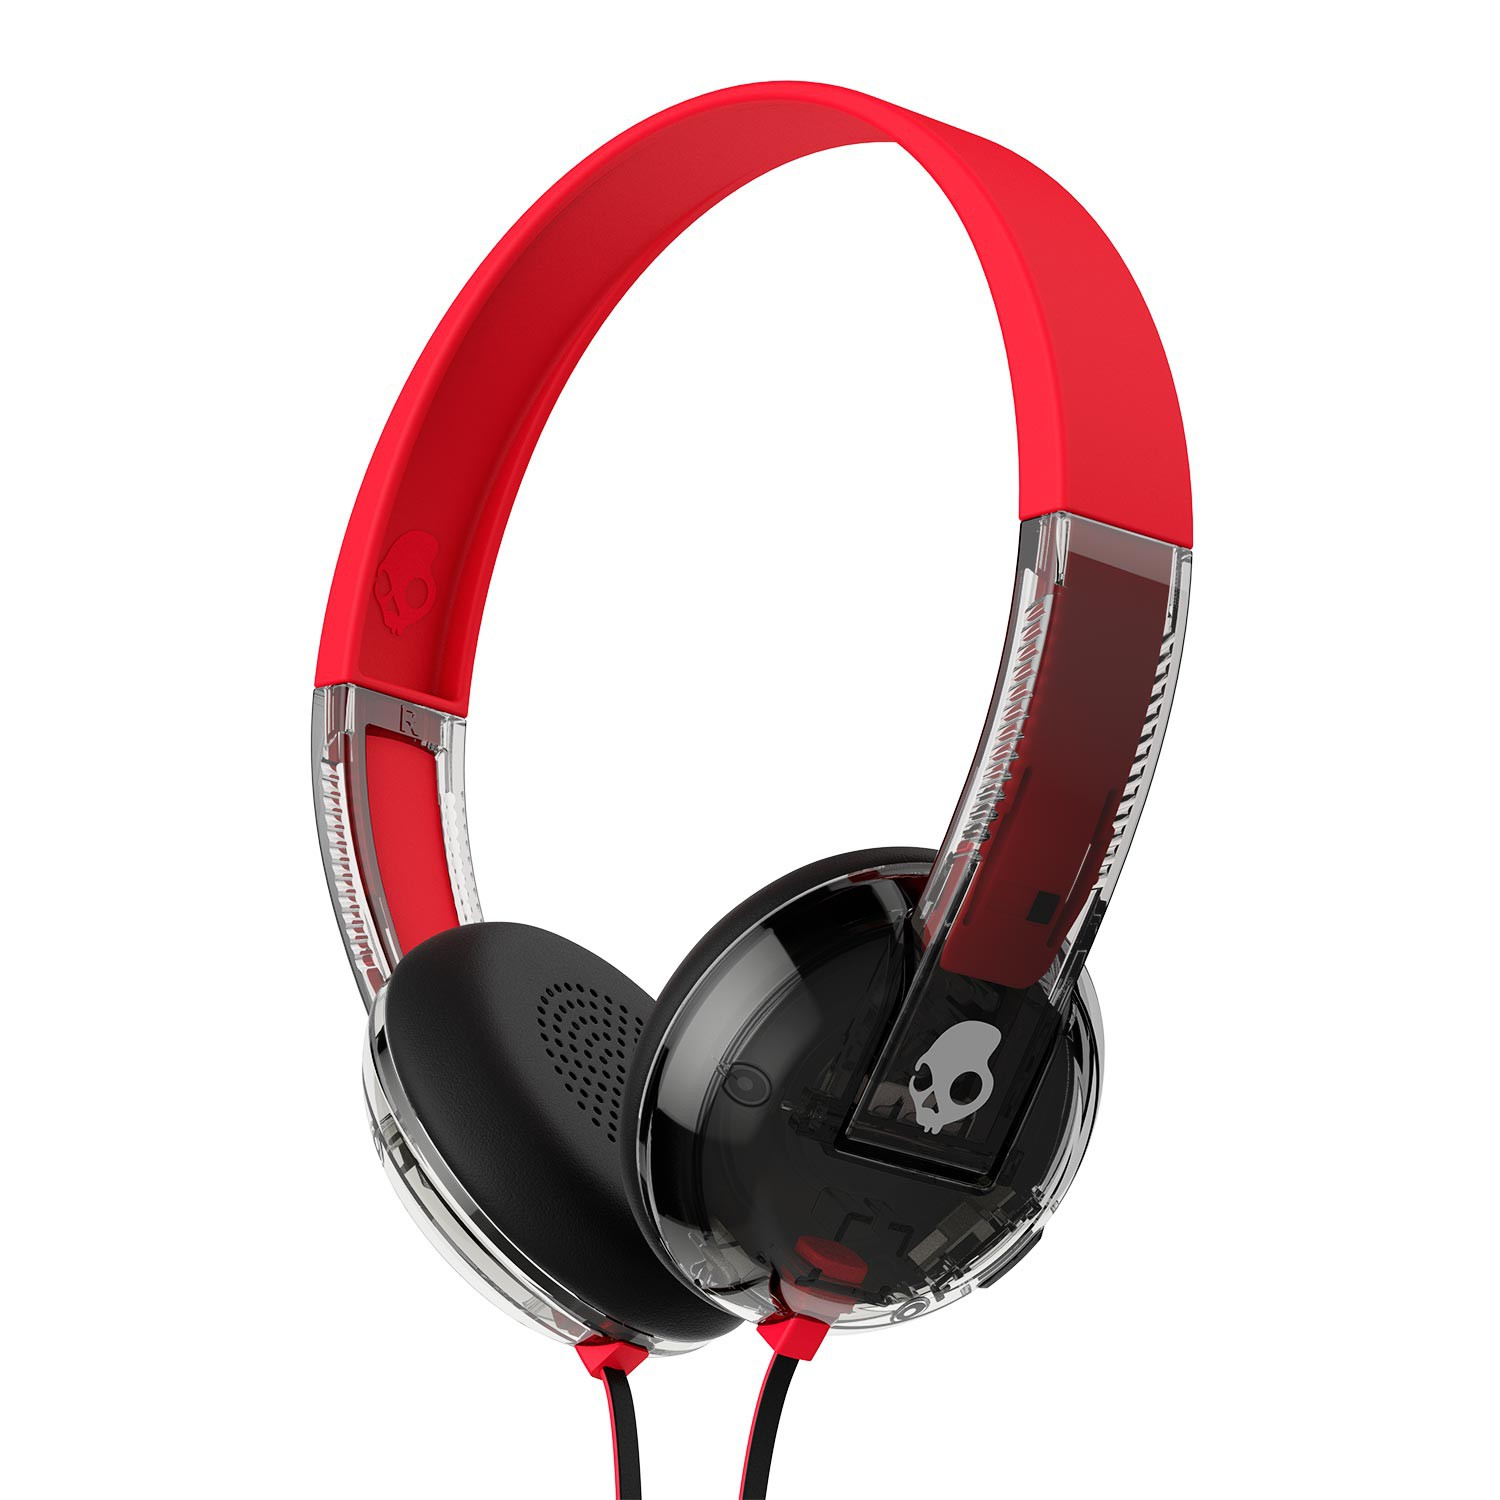 Sluchátka Skullcandy Uproar spaced out